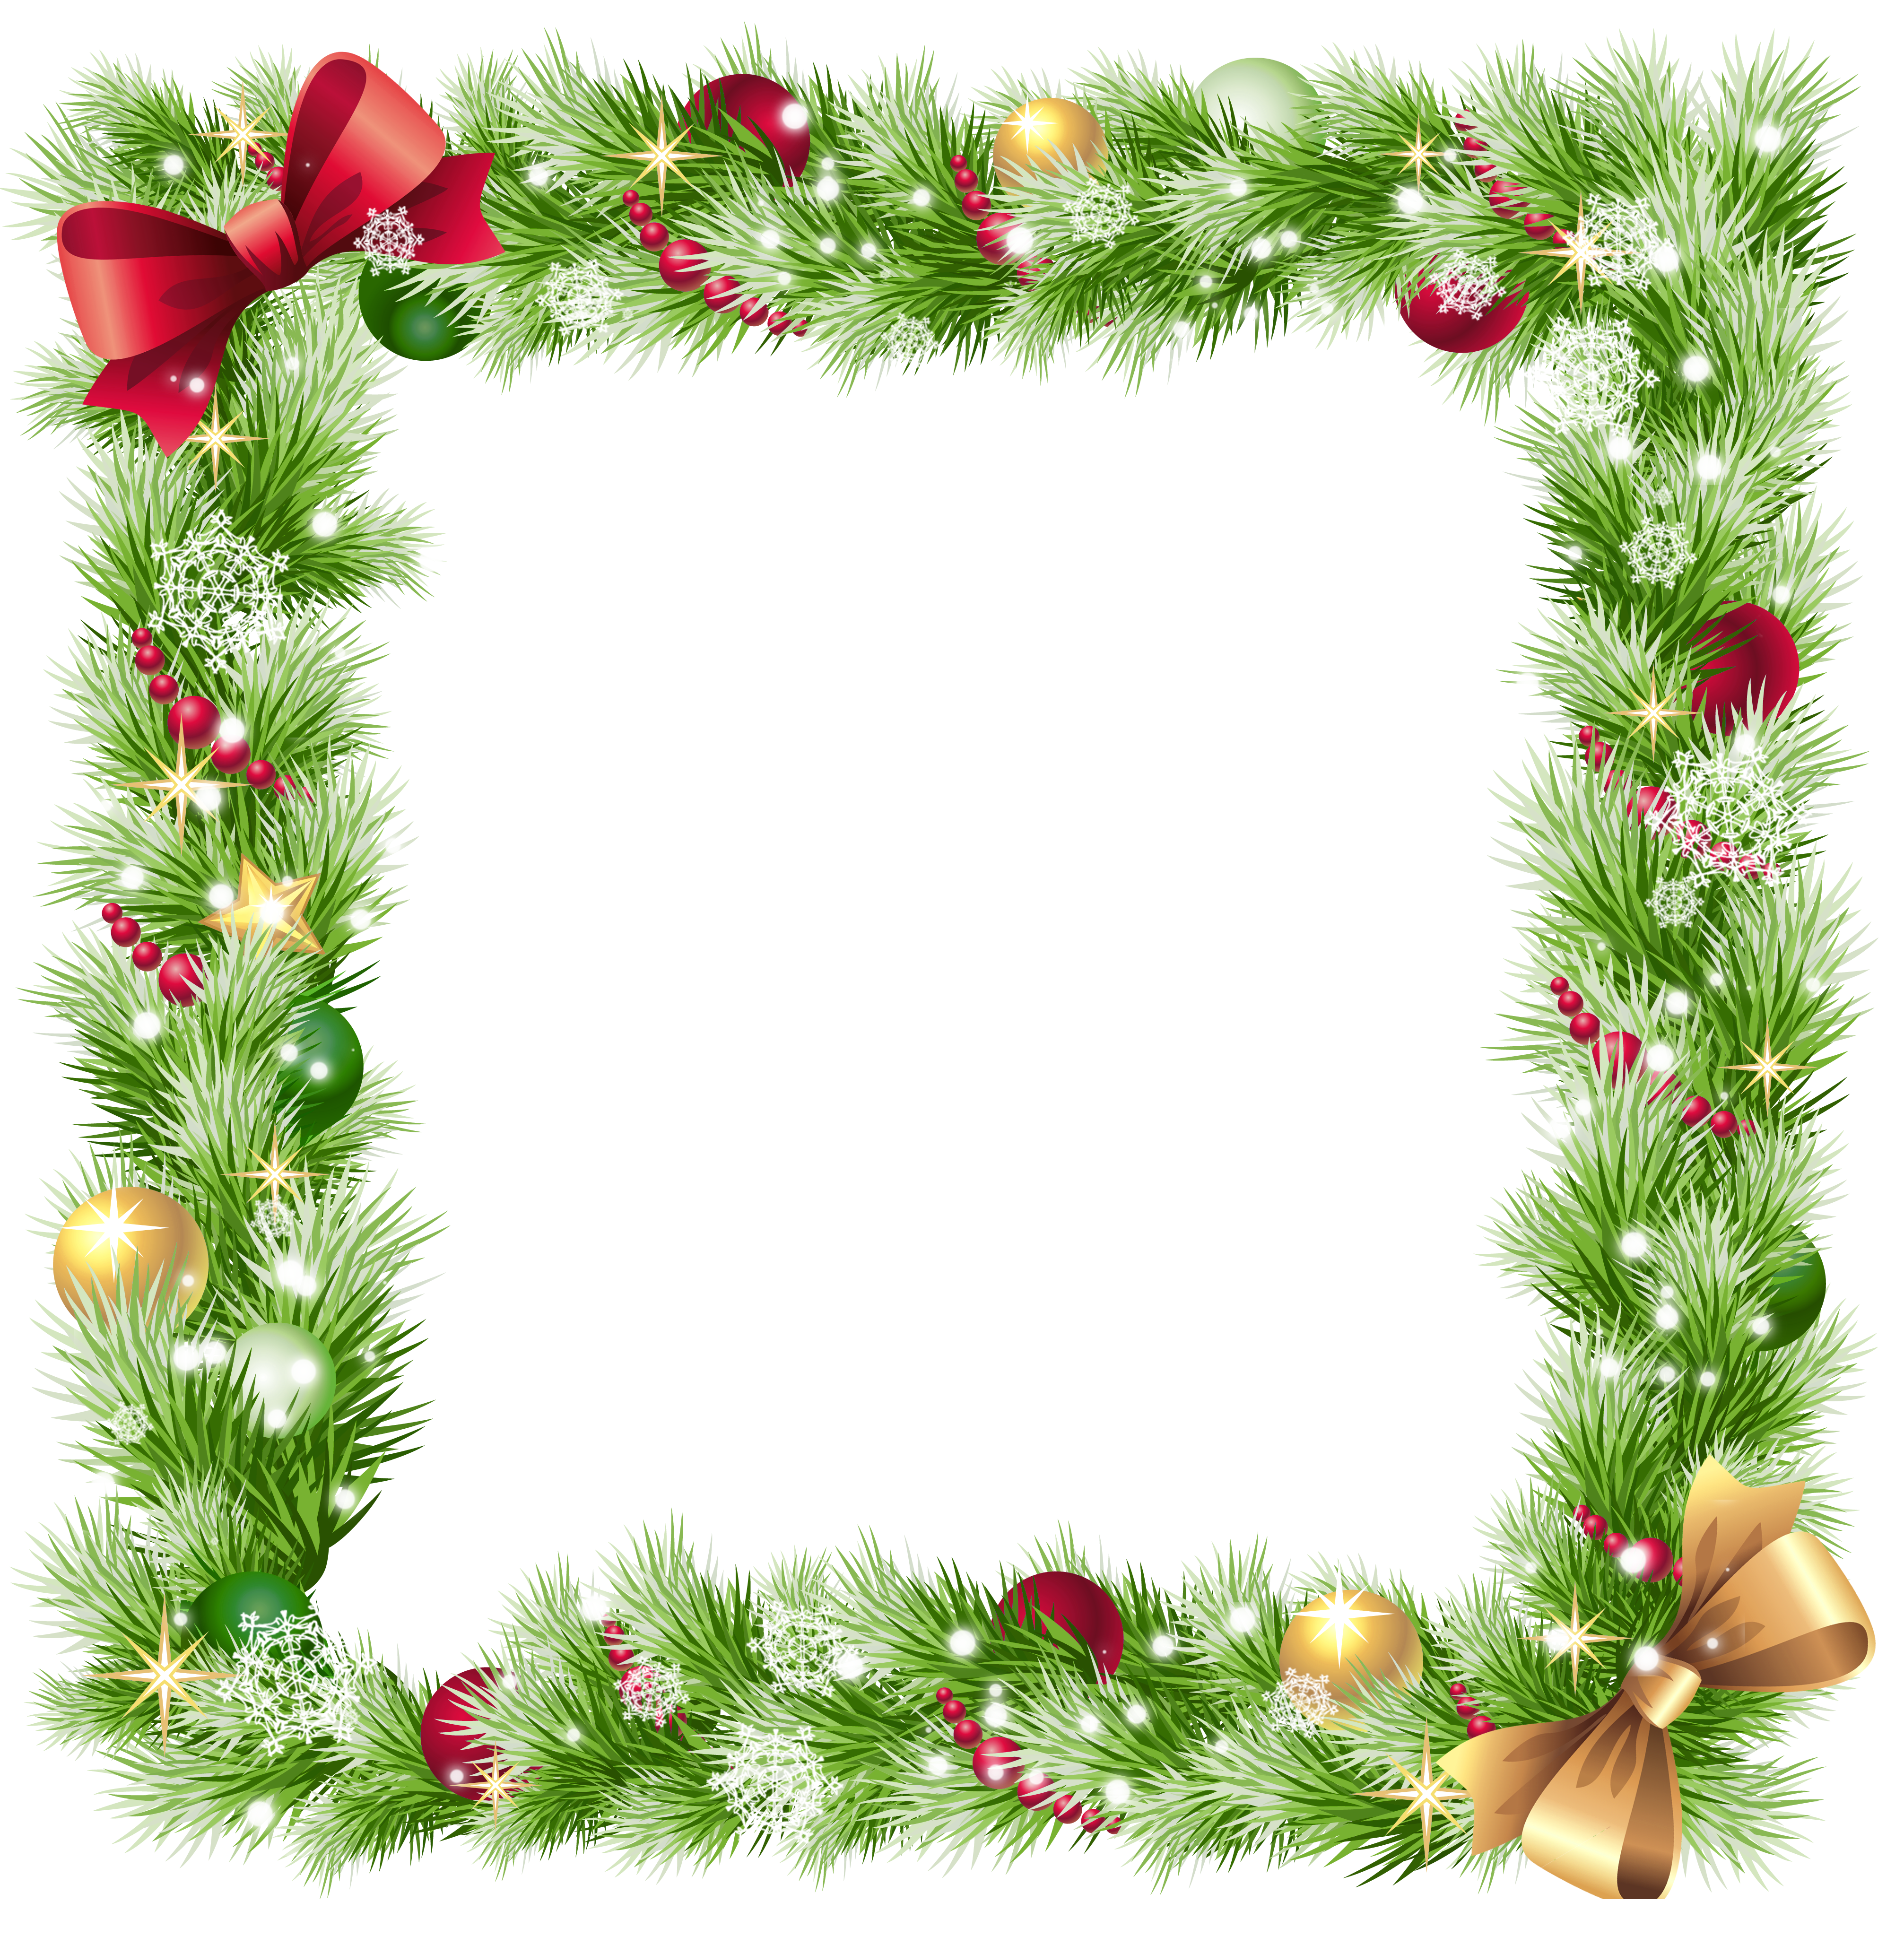 Christmas frames and borders png. Frame with ornaments snowflakes